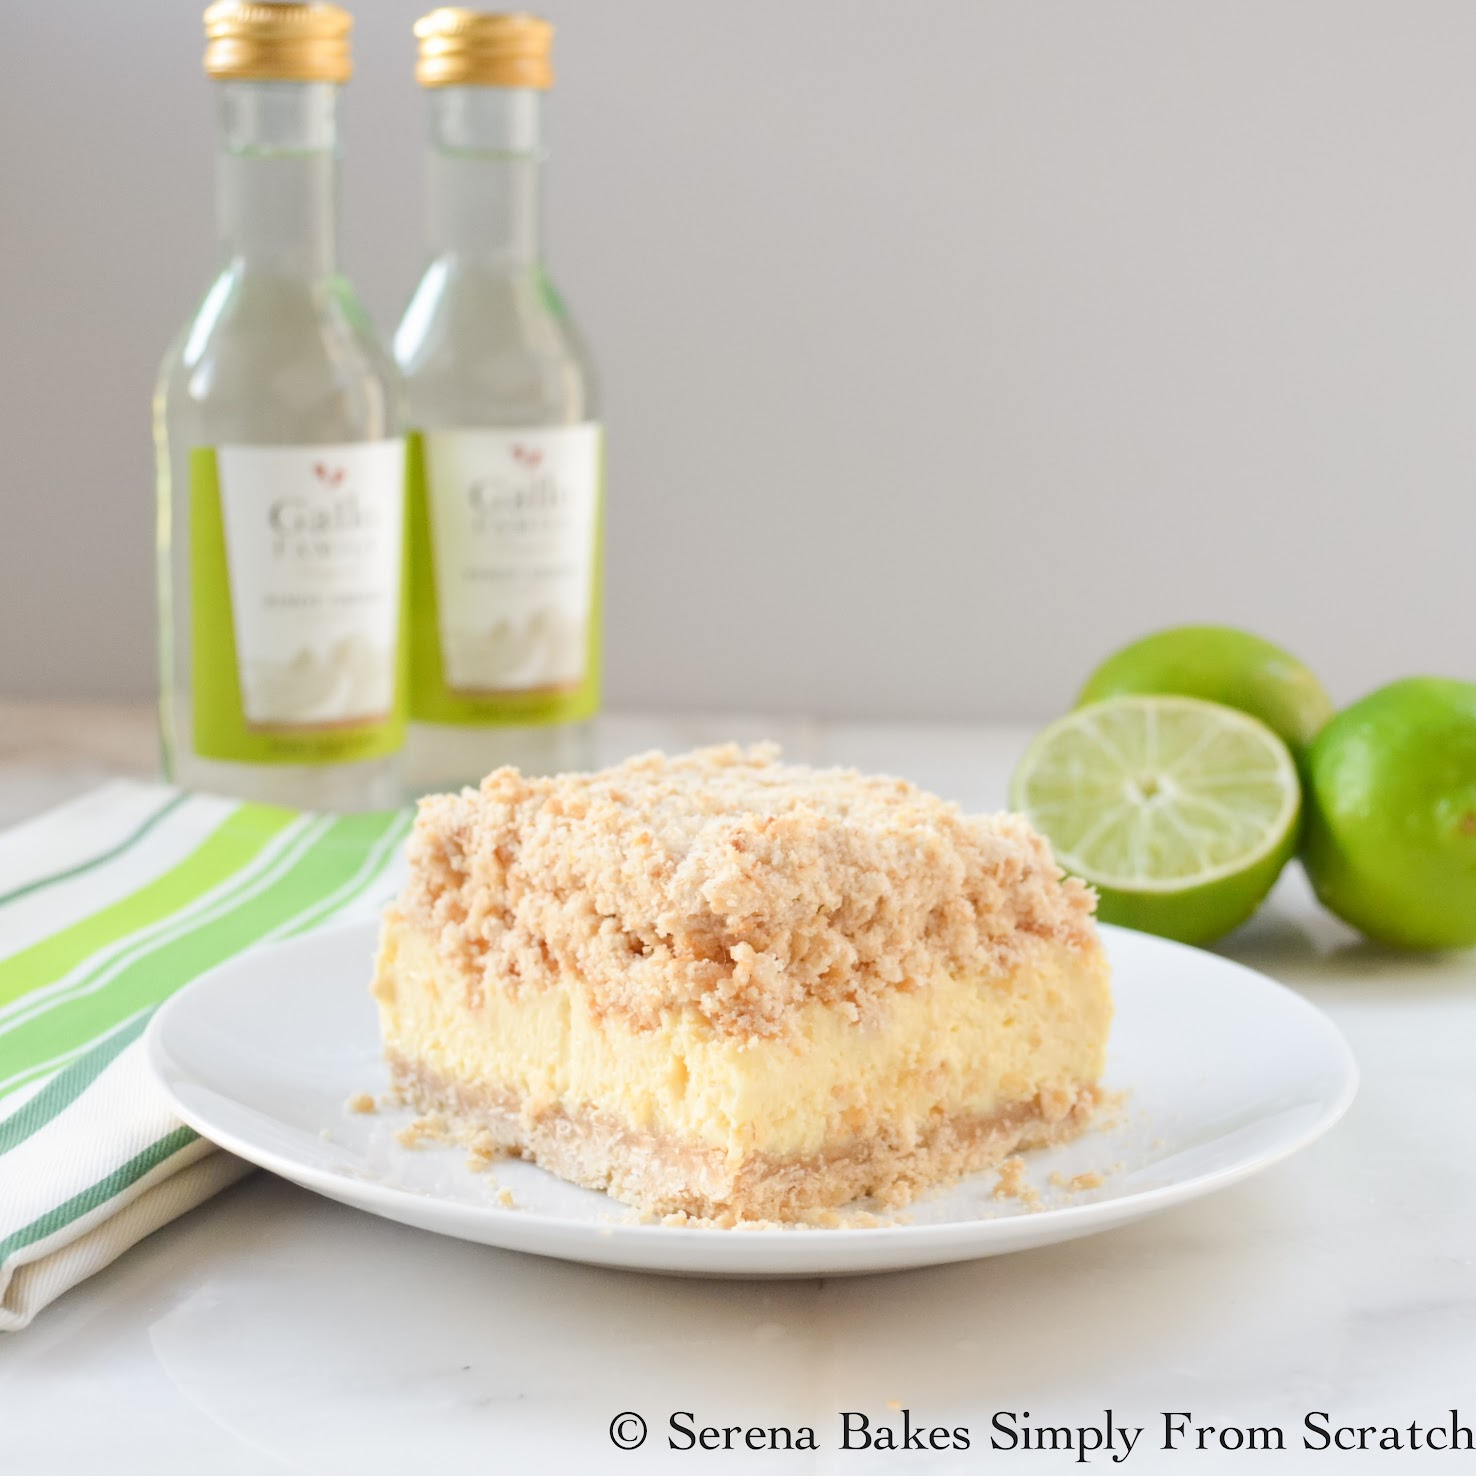 Key Lime Cheesecake Crumb Bars are creamy and delicious! www.serenabakessimplyfromscratch.com